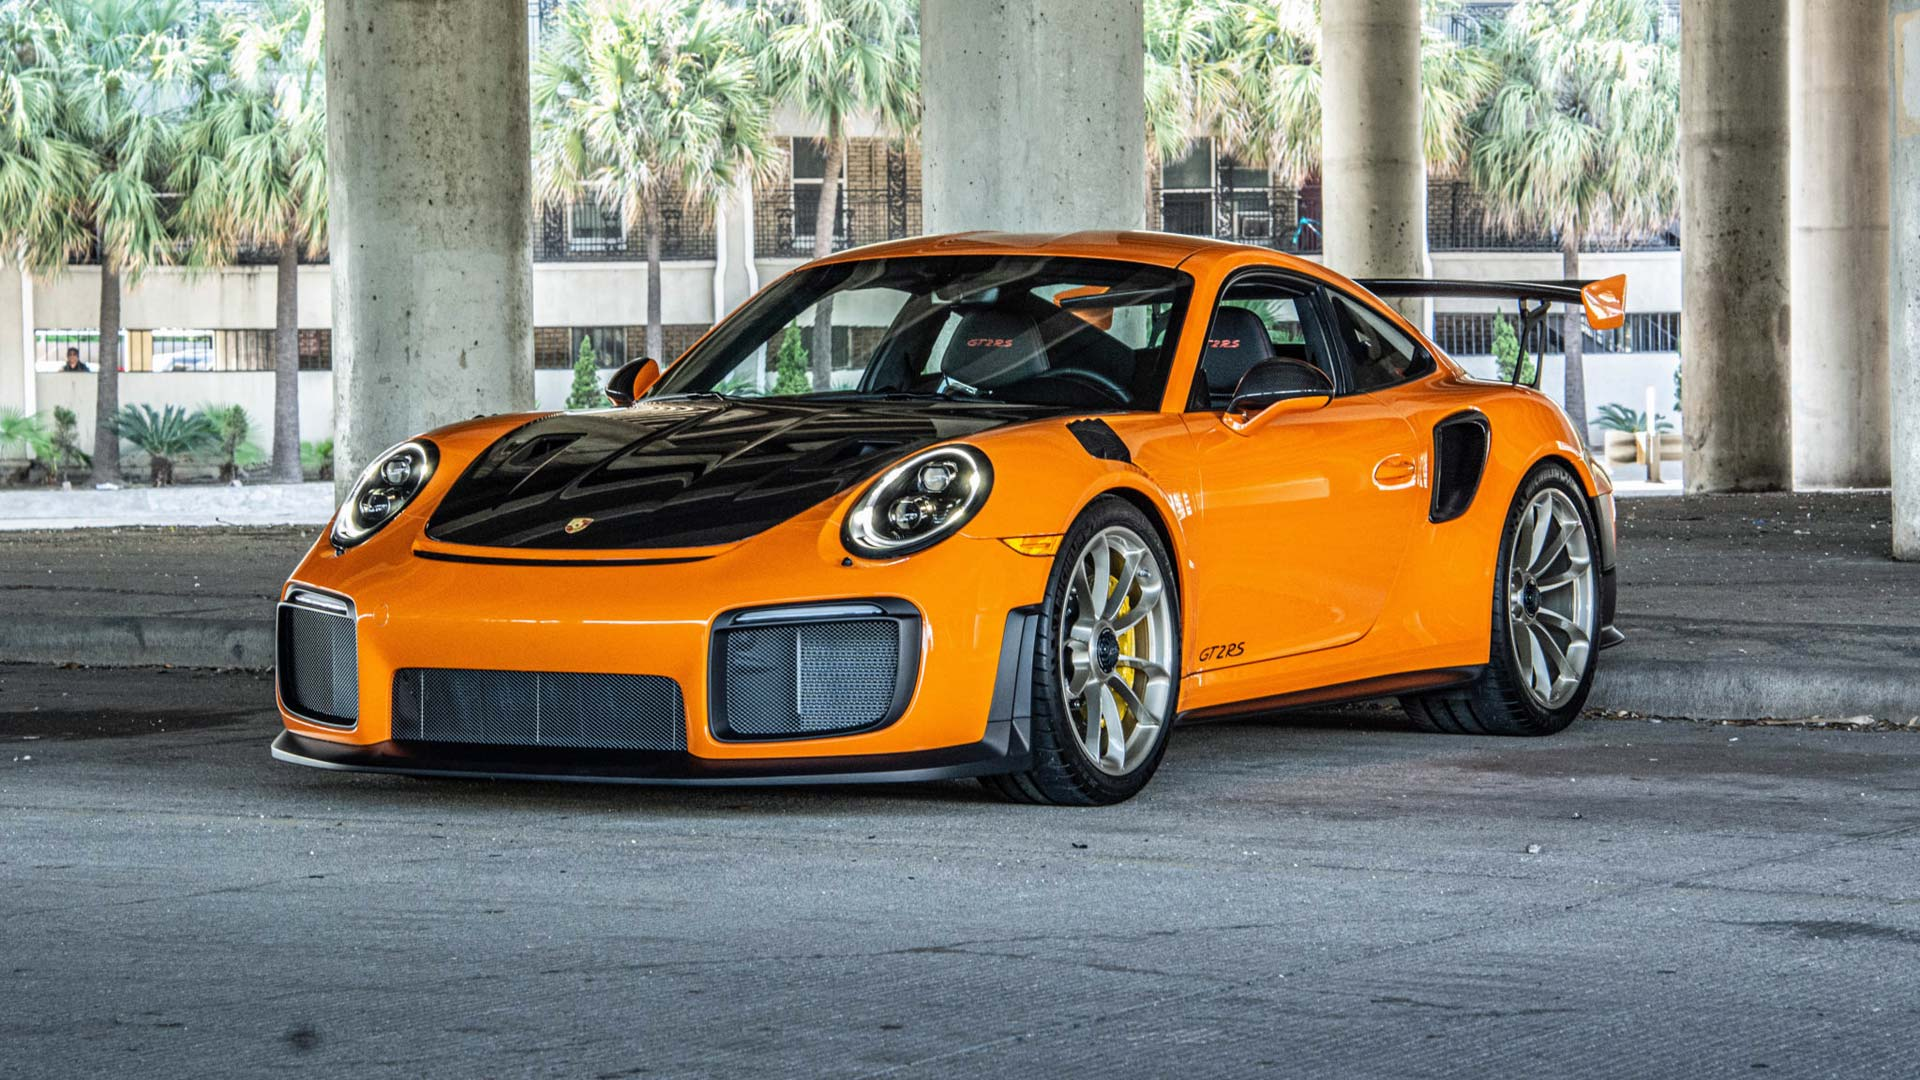 Live Your Tangerine Dreams With This Extreme Porsche 911 Gt2 Rs Motoring Research